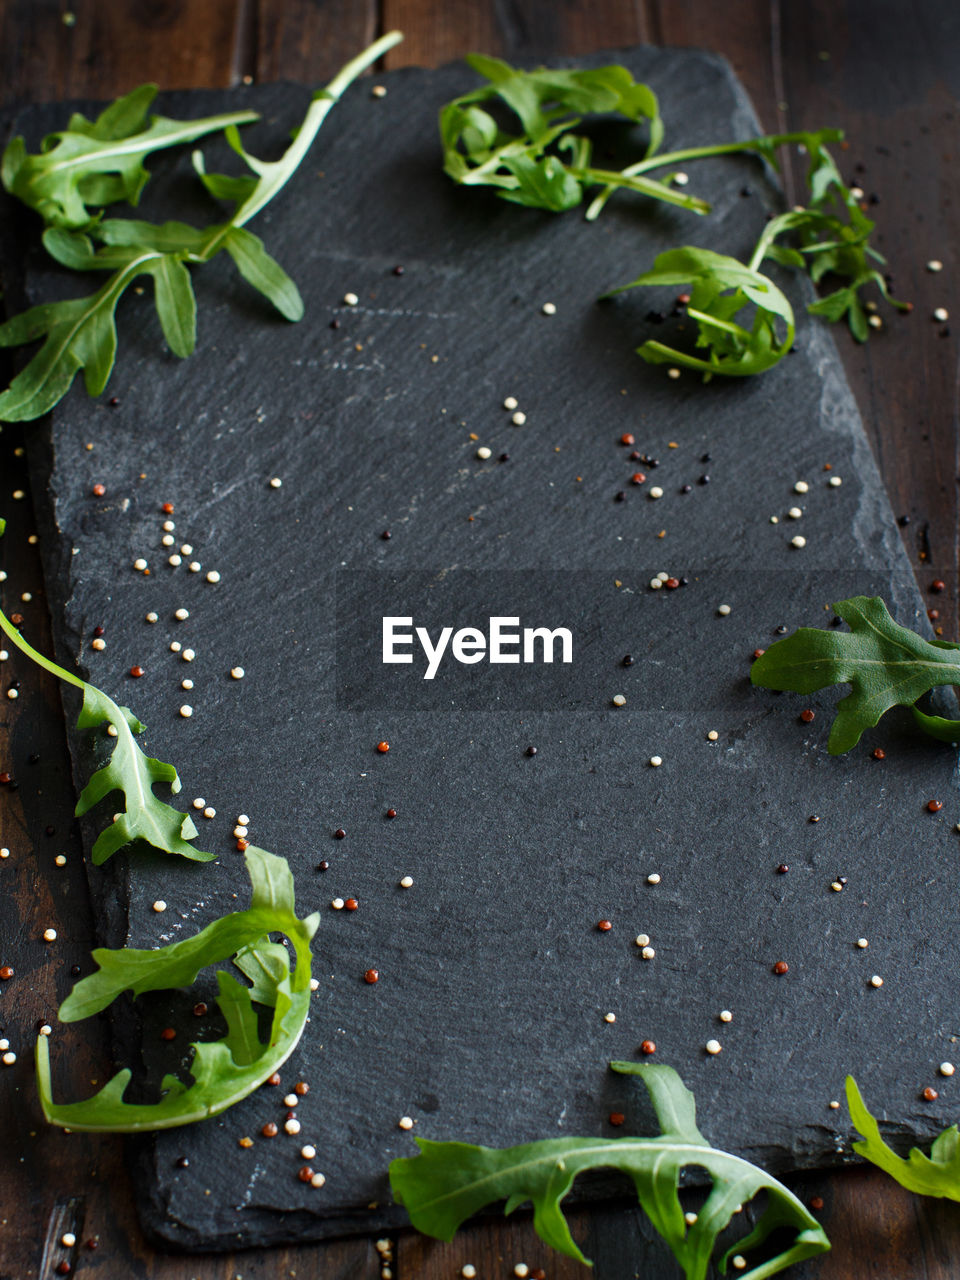 food, food and drink, healthy eating, freshness, wellbeing, plant part, leaf, vegetable, green color, close-up, no people, herb, high angle view, plant, still life, table, spice, ingredient, indoors, seed, garnish, vegetarian food